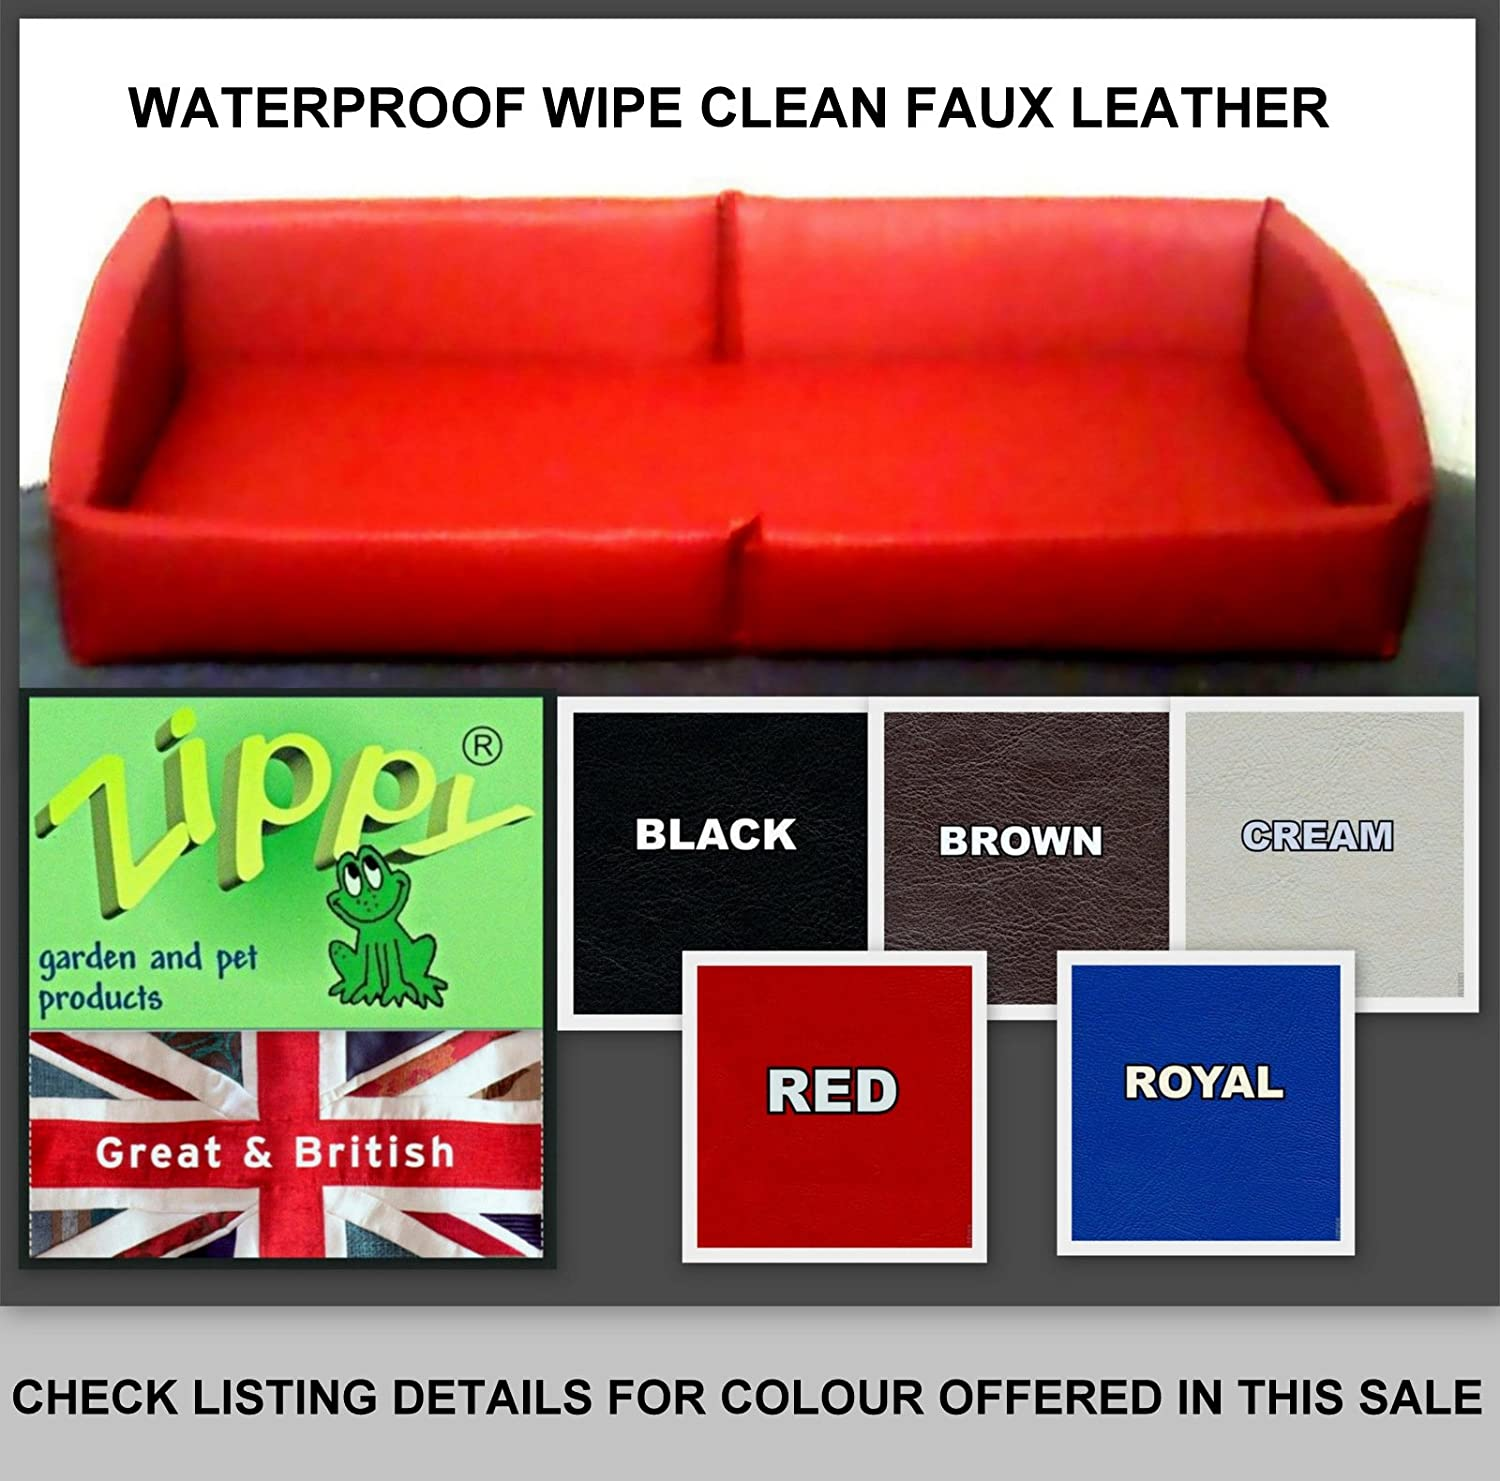 BLACK Faux Leather  Double Zippy Pet Dog Bed  Wipe Clean  Easycare Bed